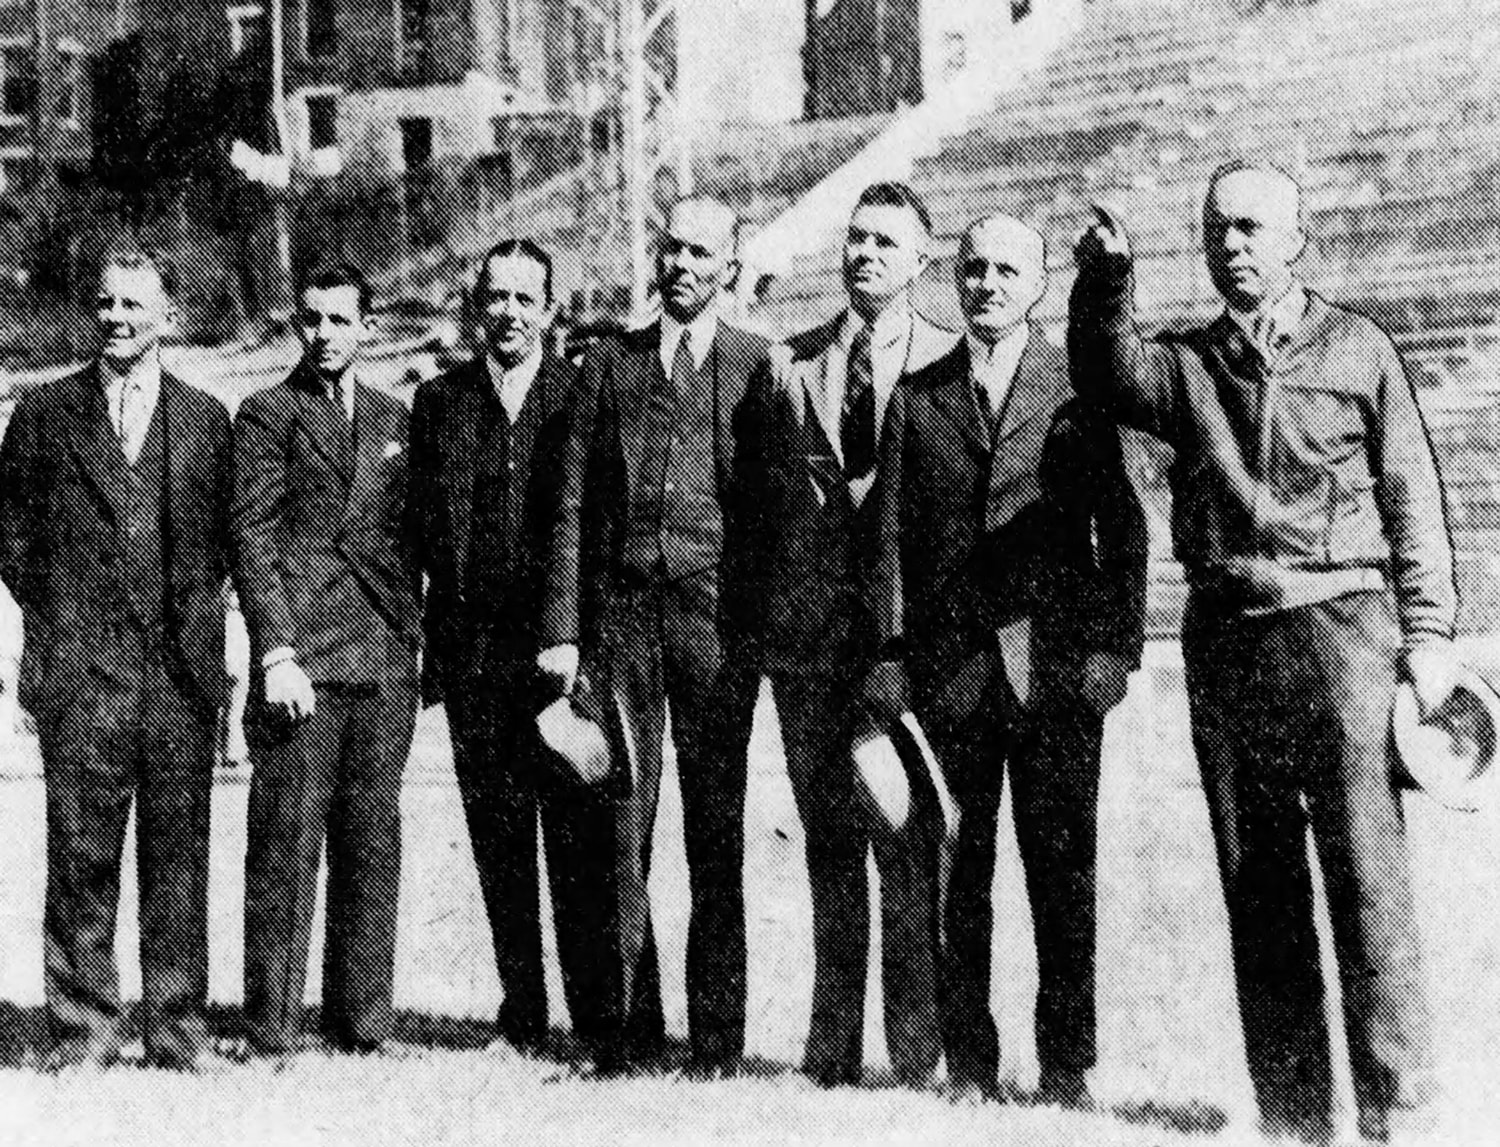 University and county officials complete the refurbished stadium's final inspection—September 25, 1936. [Enquirer]